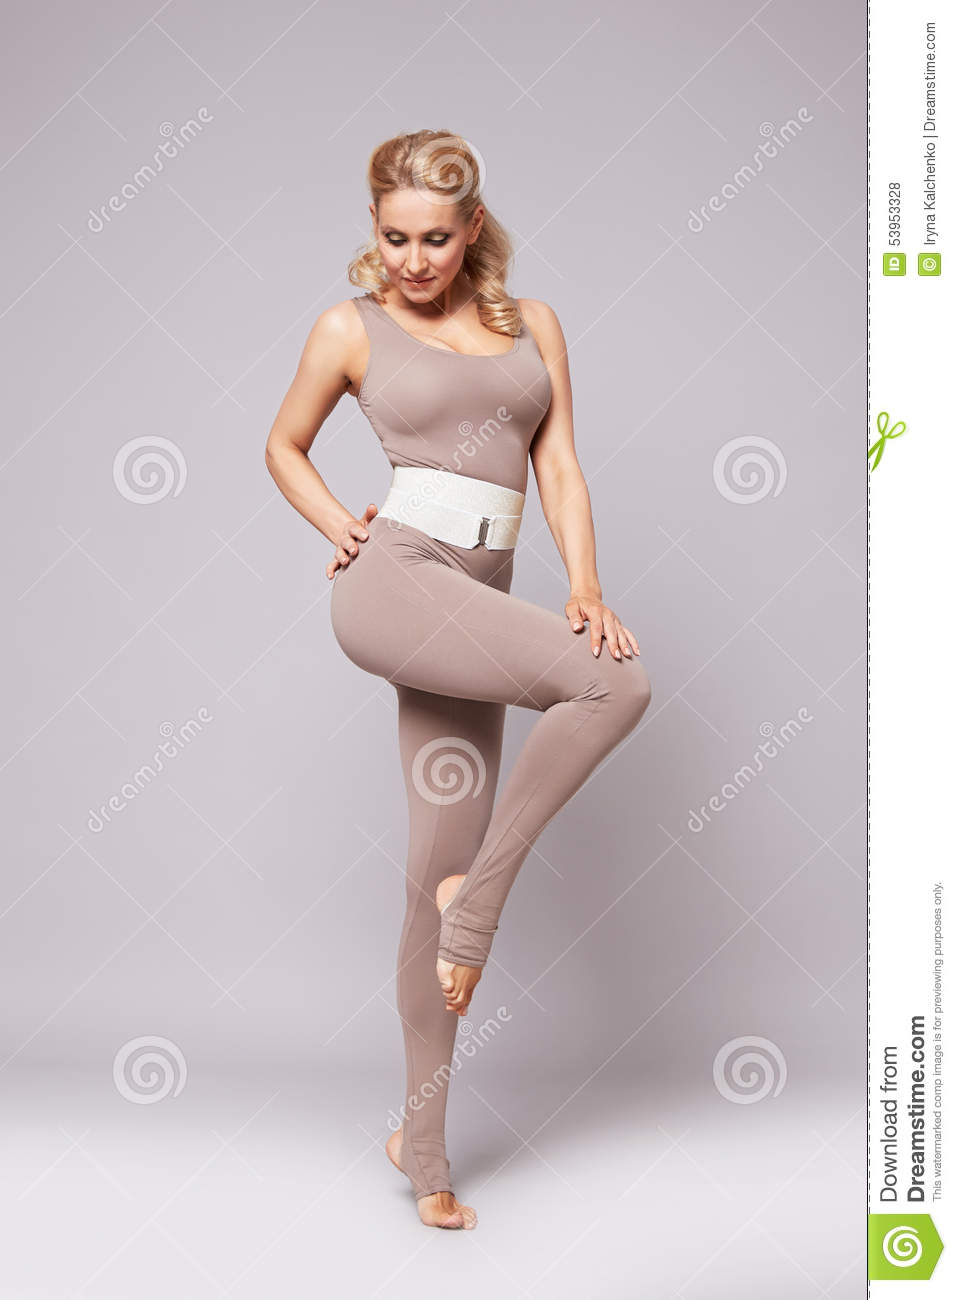 Beauty woman sport yoga pilates fitness body shape clothes